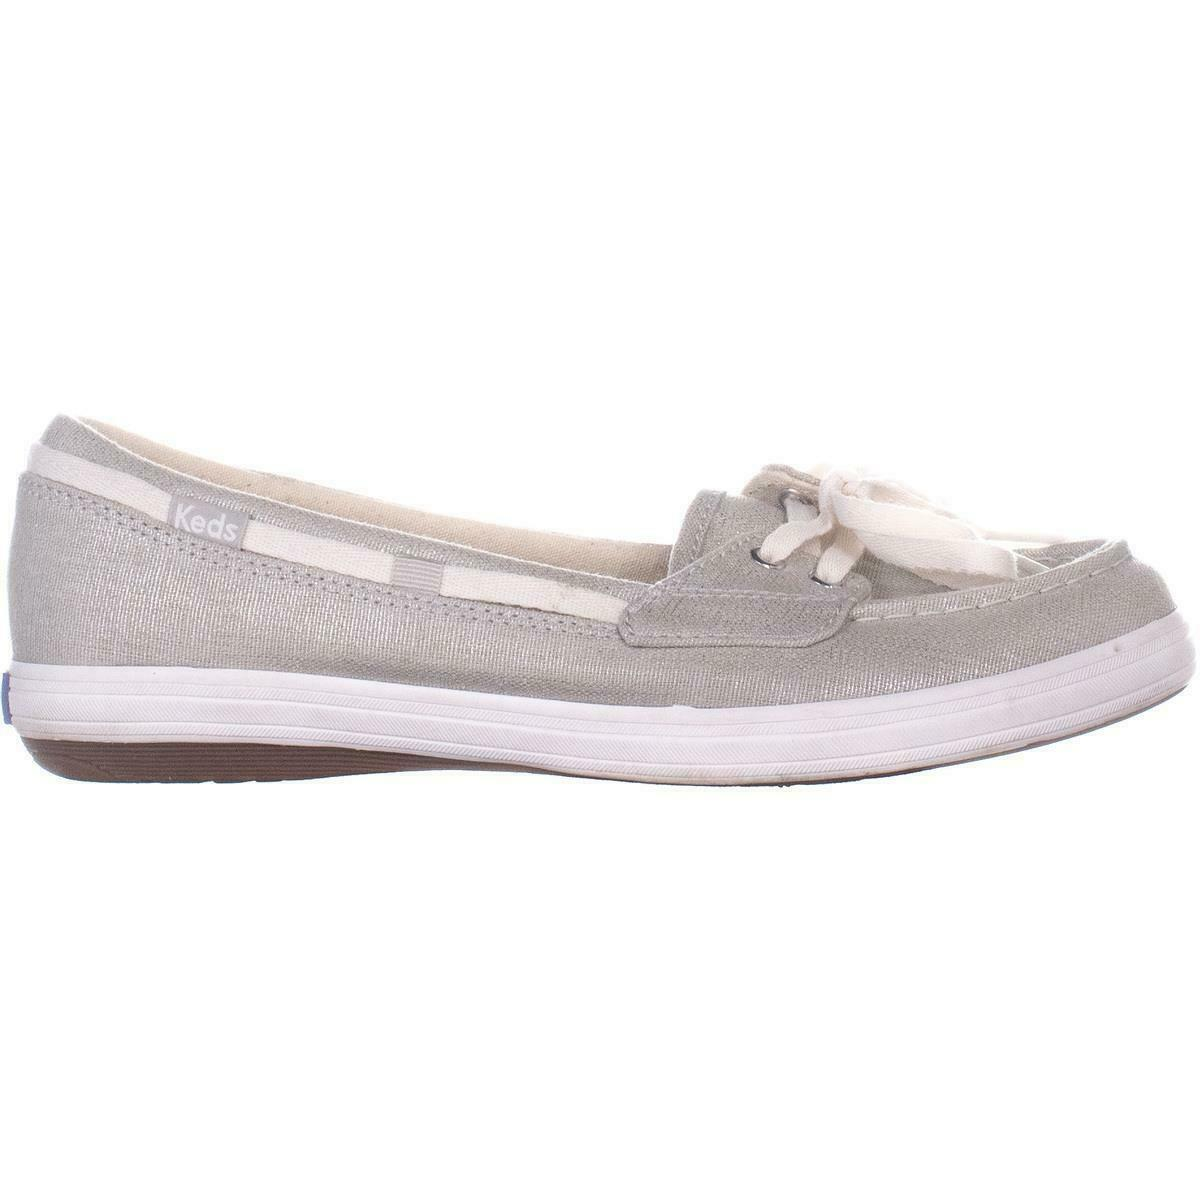 Keds Glimmer Lace Up Boat Shoes 553, Silver, 6.5 US / 37 EU image 5